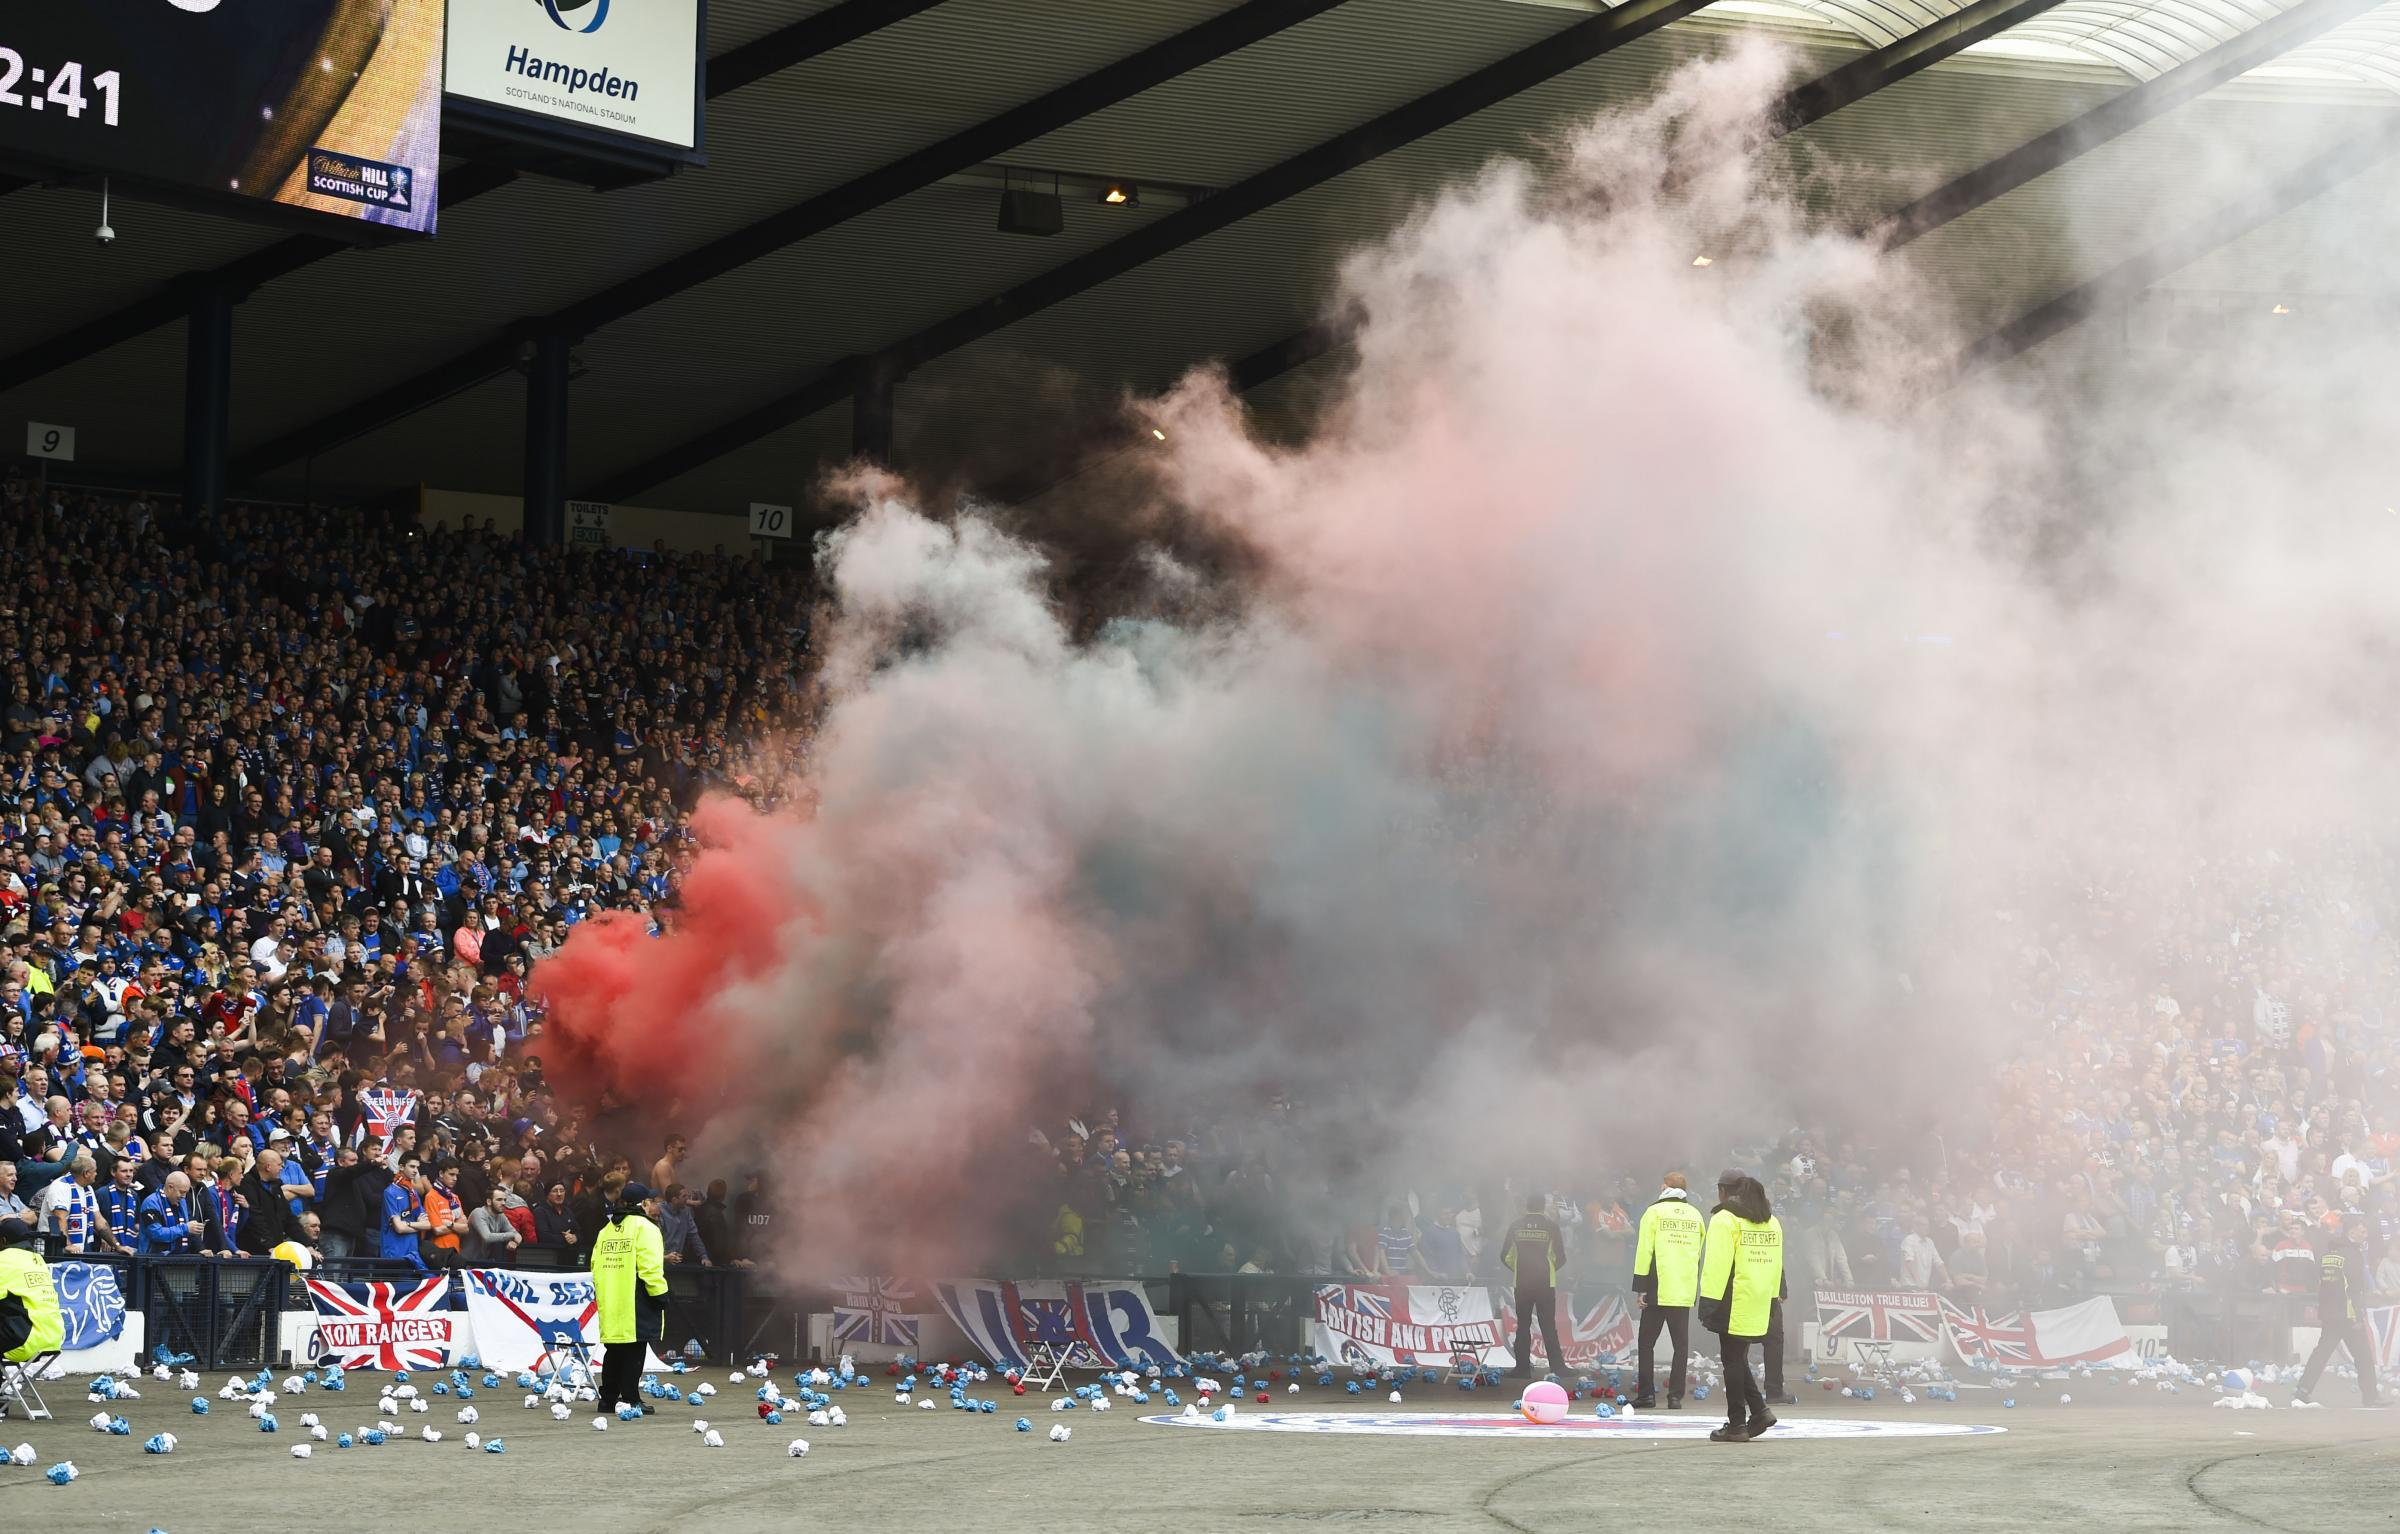 The Act aims in part to tackle bigotry at Scottish football matches